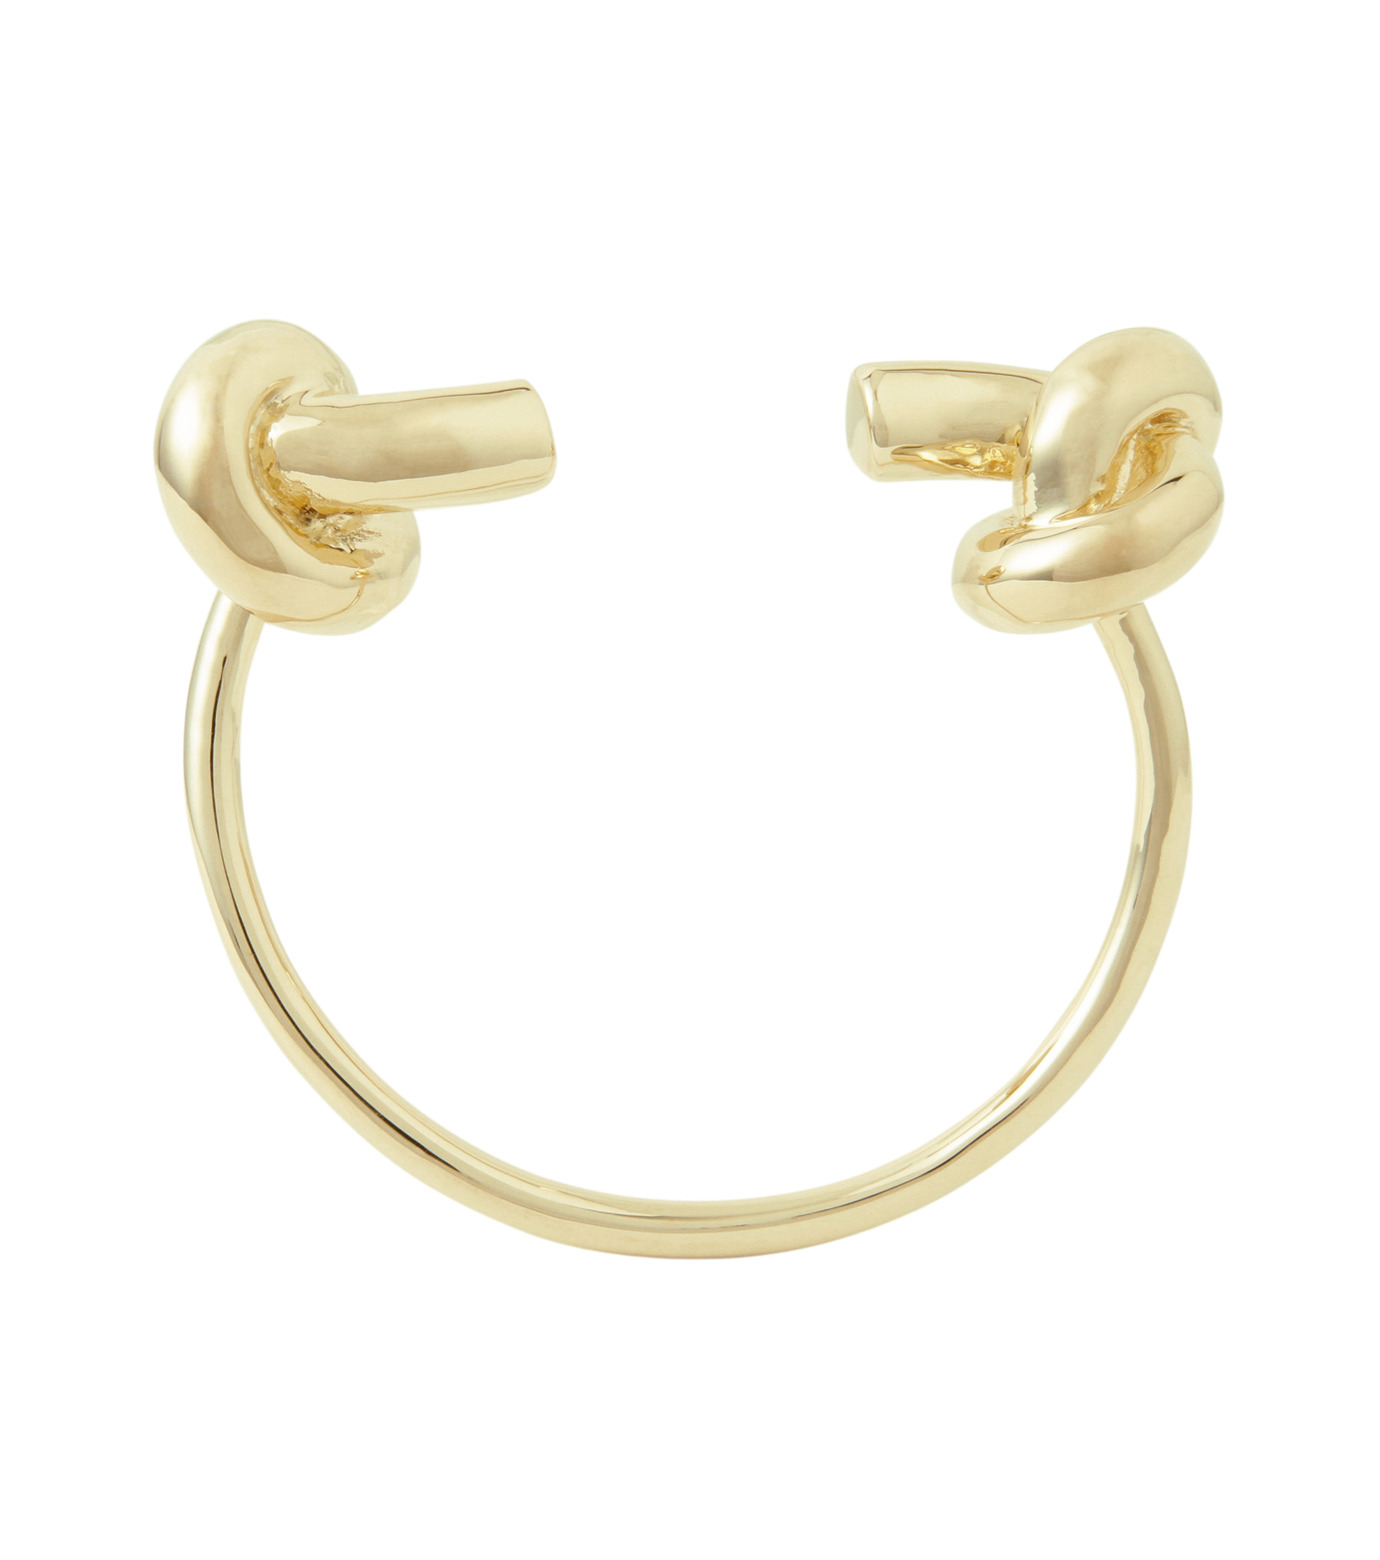 Jennifer Fisher(ジェニファーフィッシャー)のLarge Double Knot Cuff-GOLD-Knot-Cuff-L-2 拡大詳細画像2